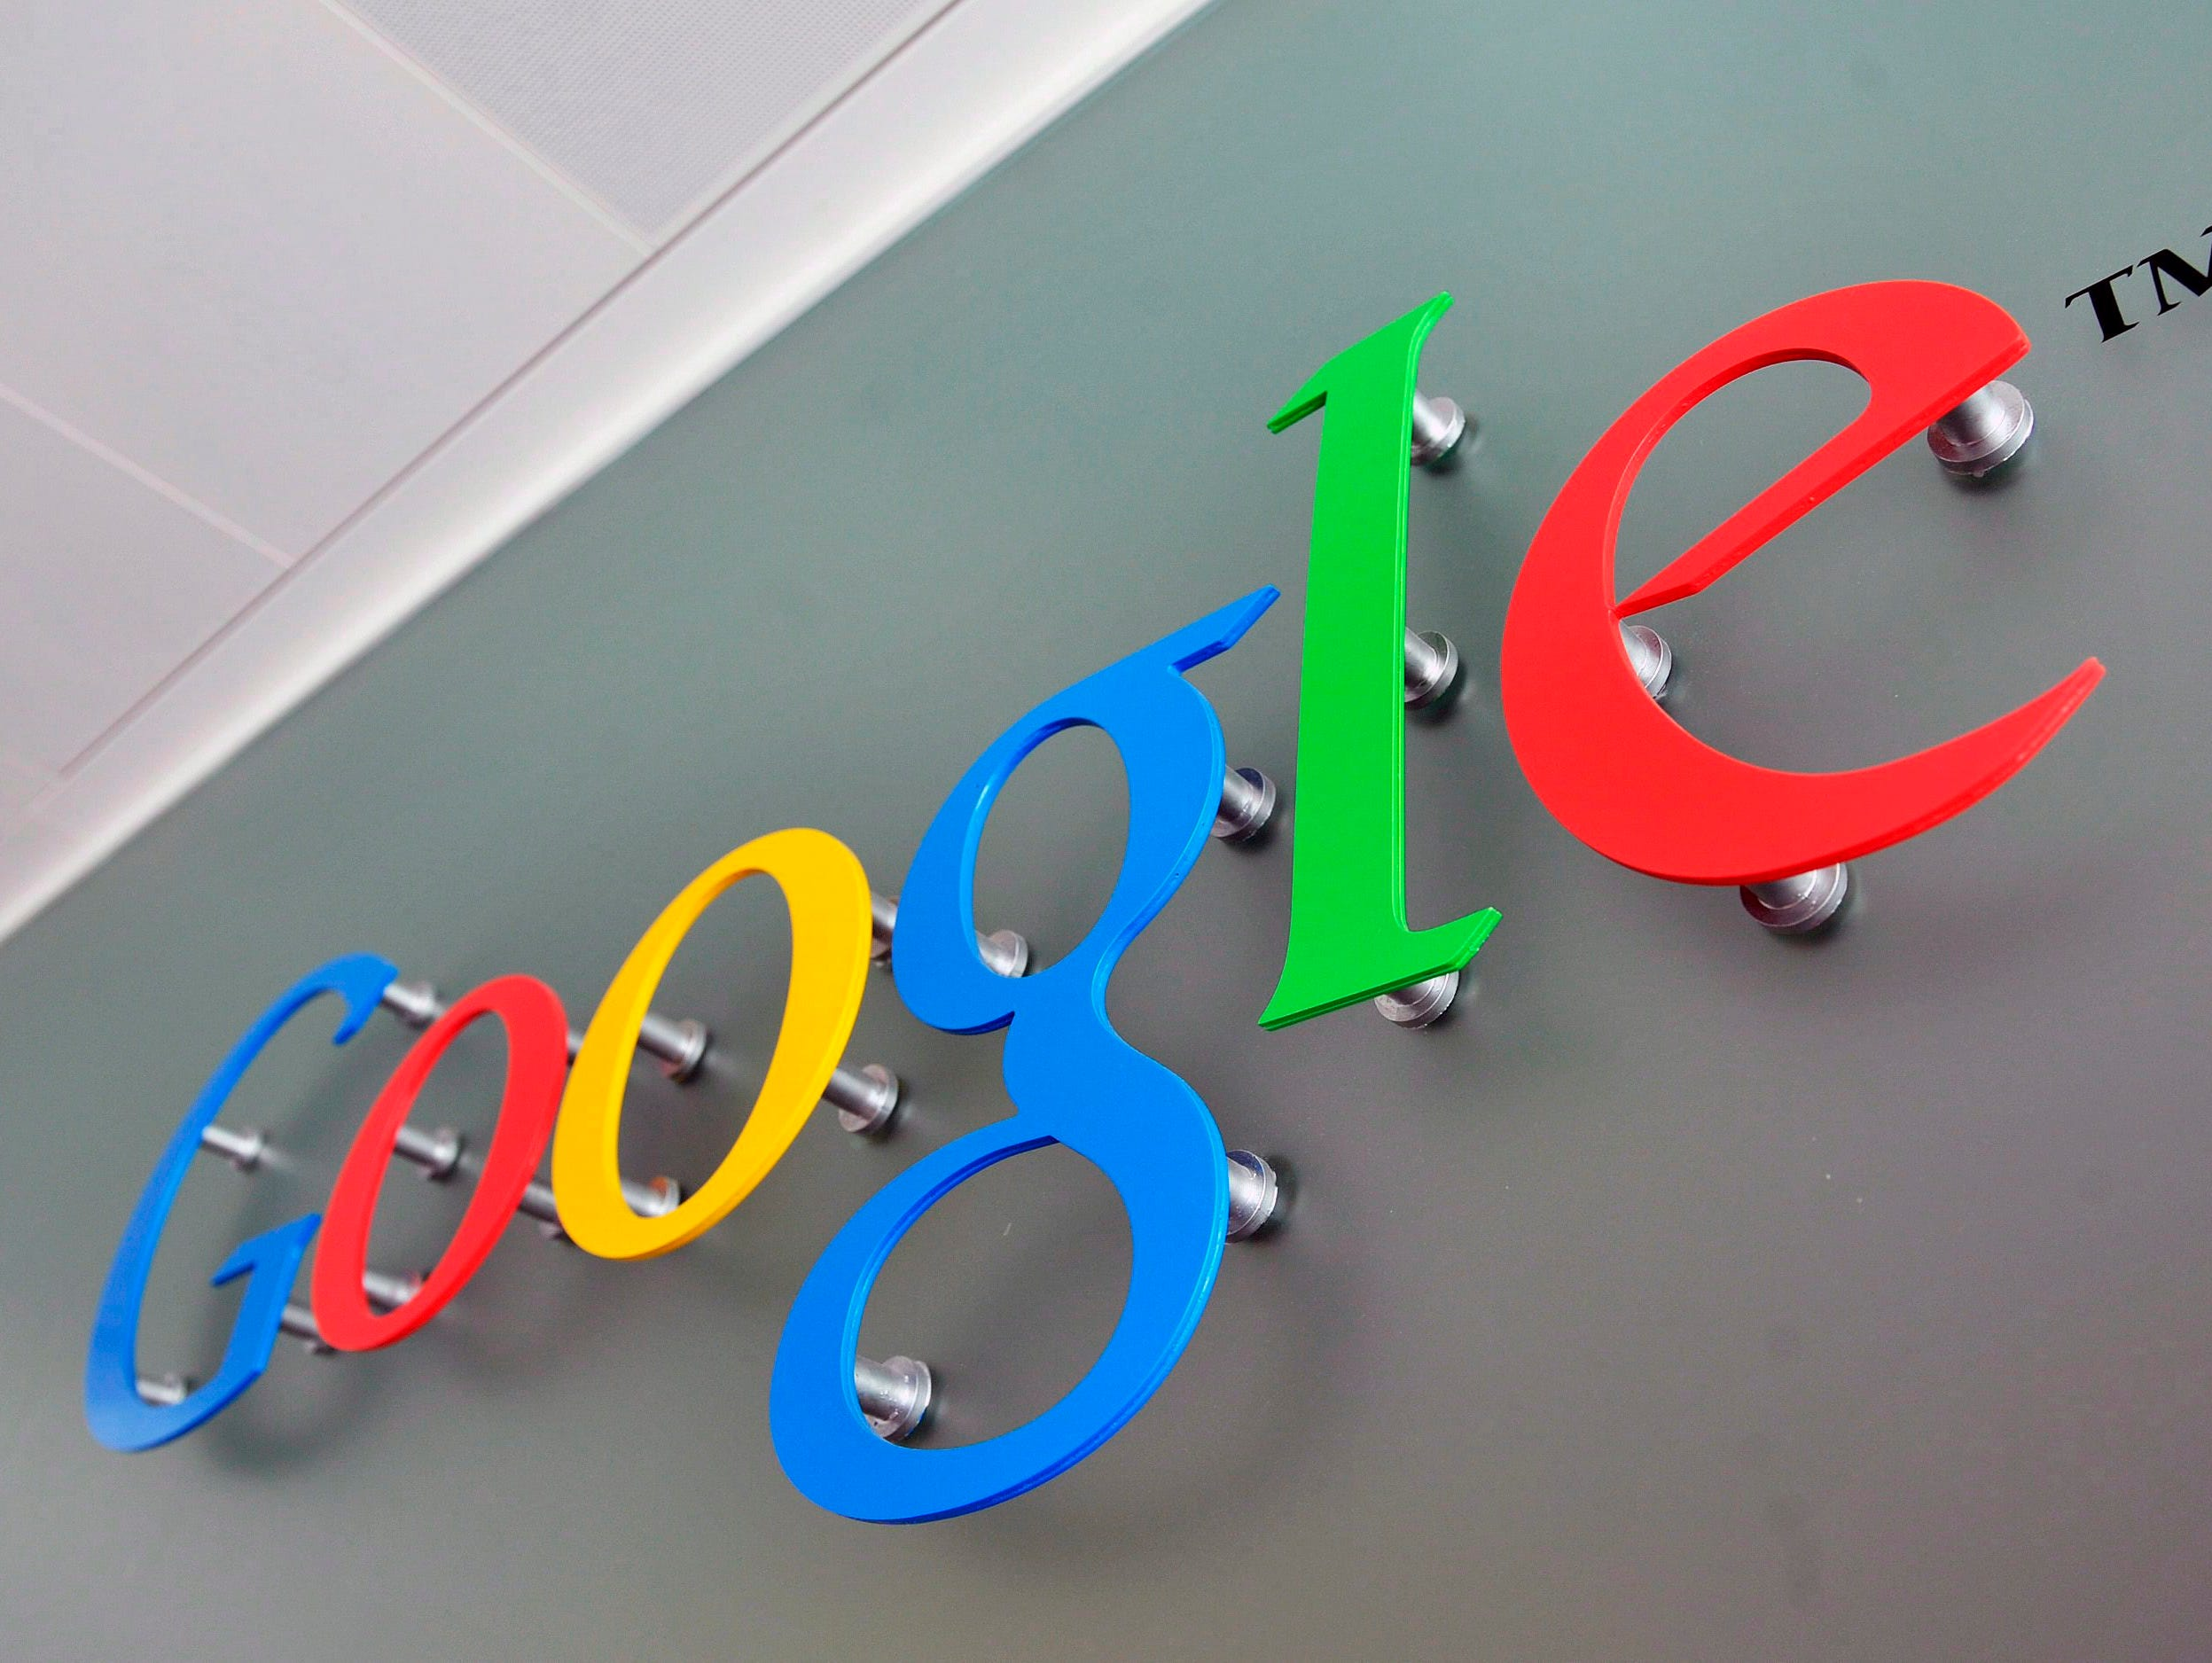 Google announced it will create a new parent company named Alphabet within the scope of Google's major restructuring.